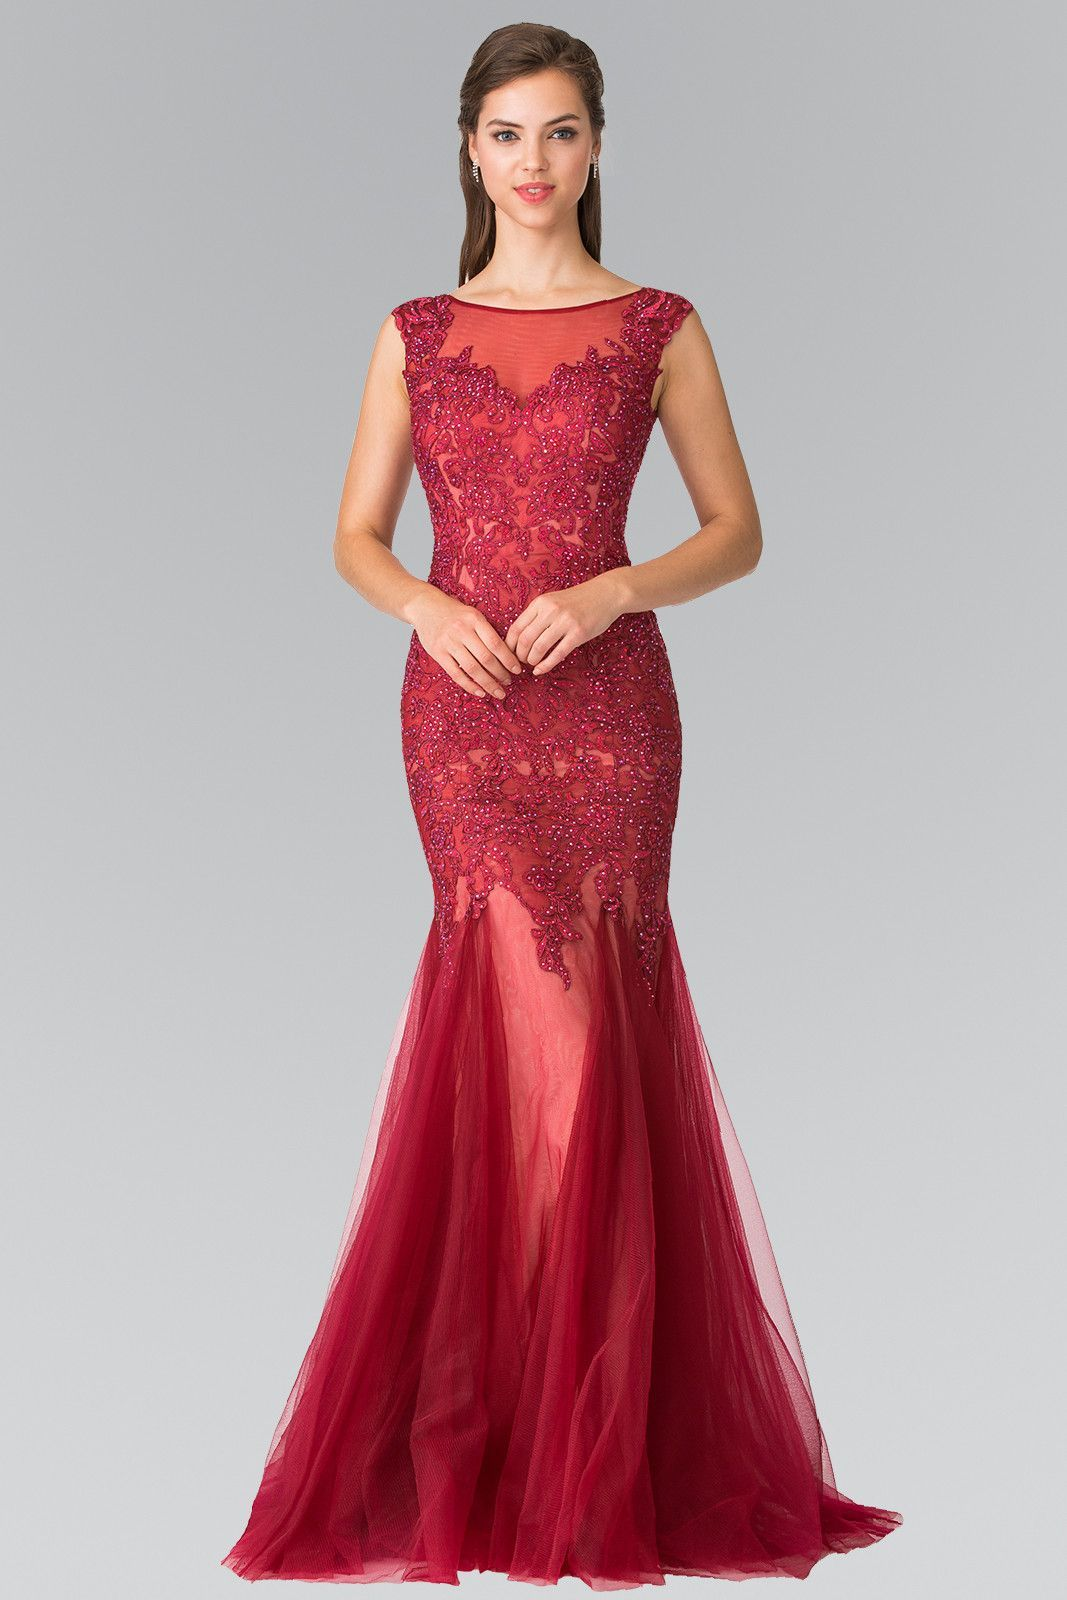 Sleeveless Embroidered Mermaid Dress with V-Back by Elizabeth K GL2319